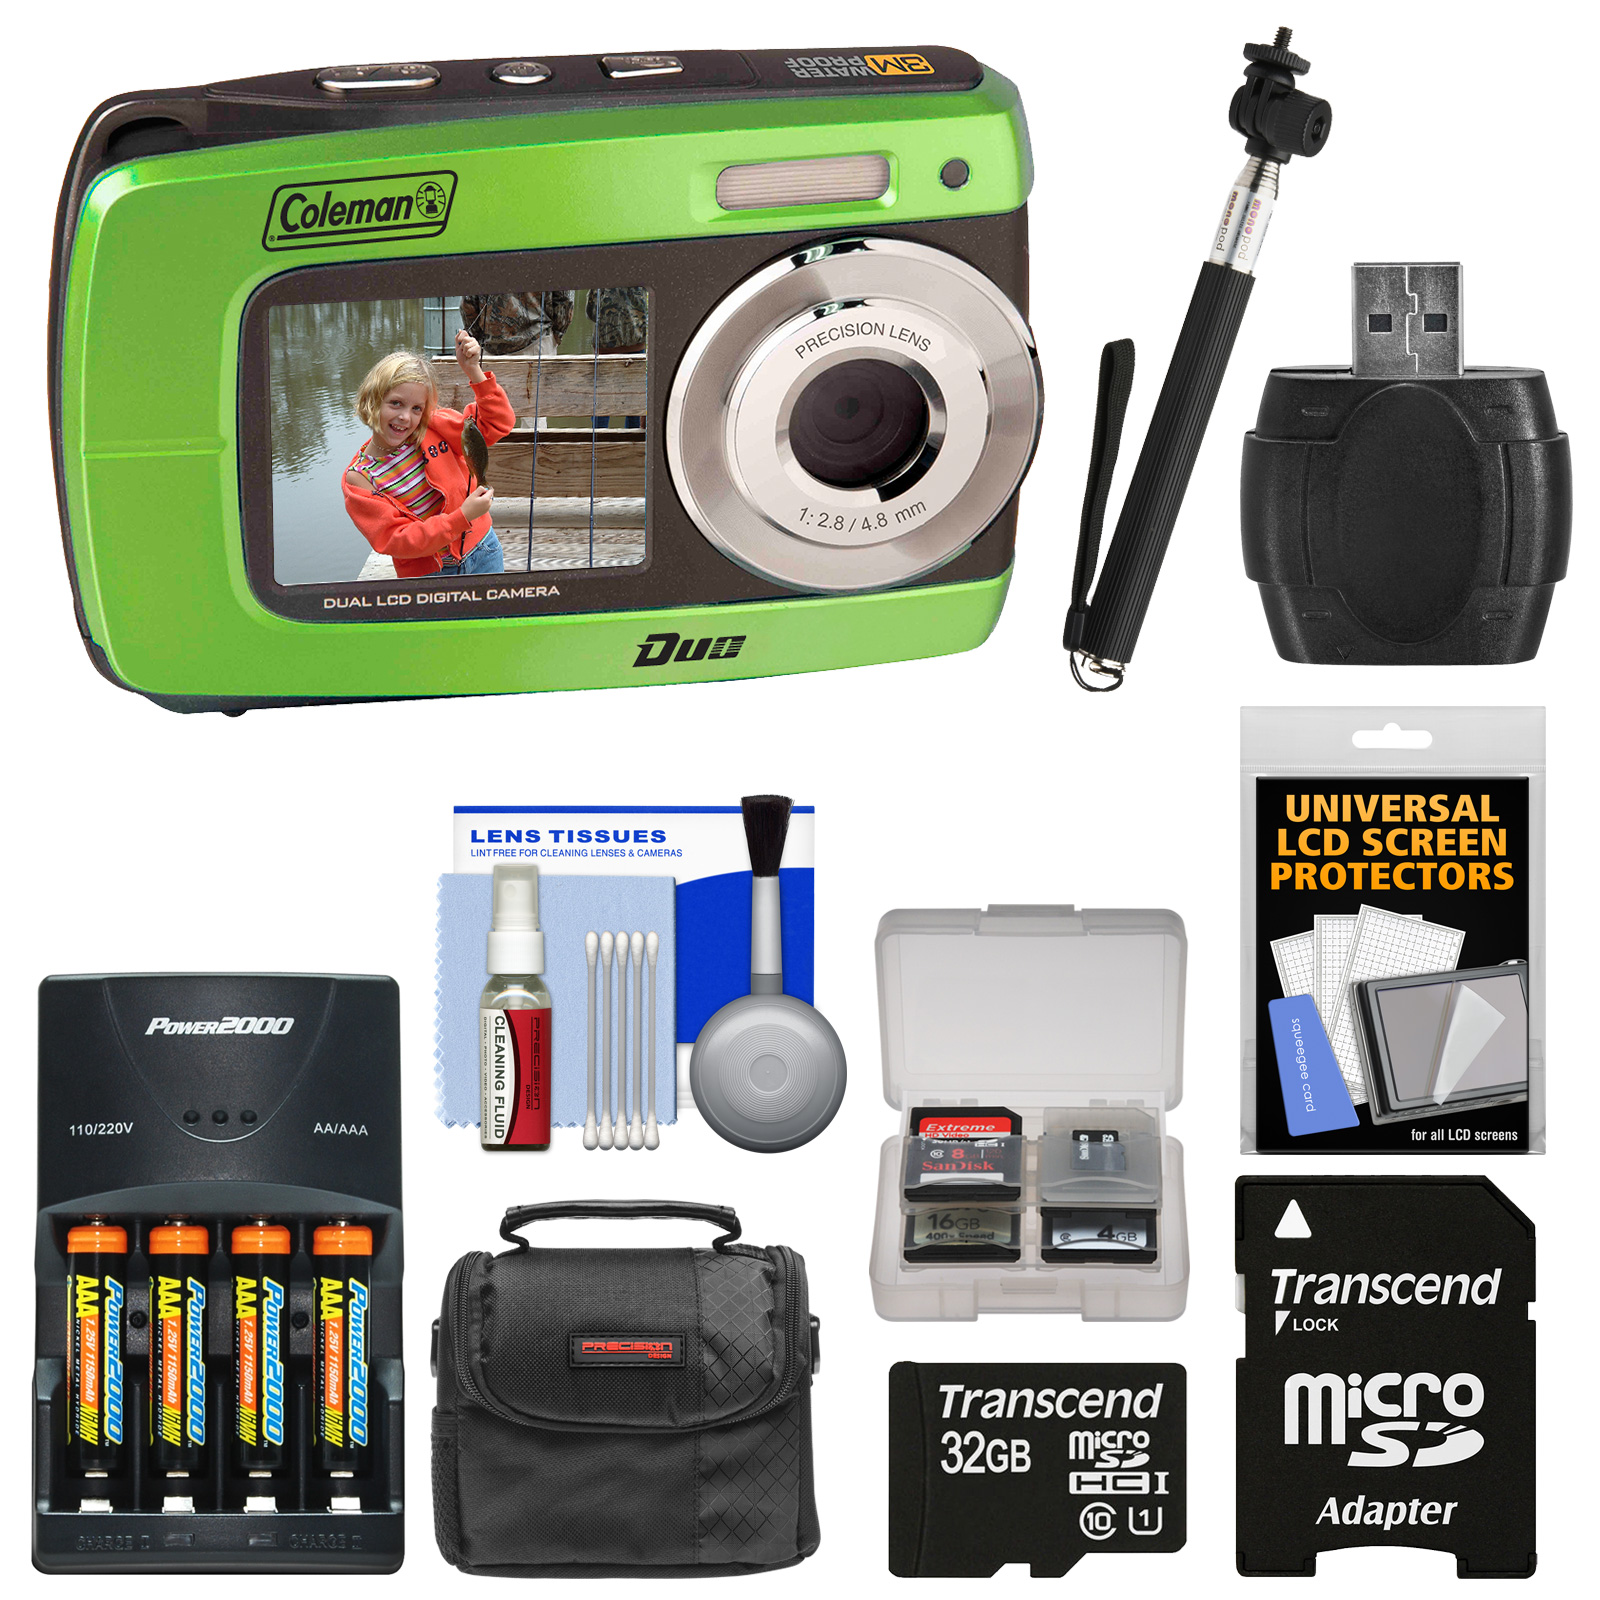 Coleman Duo2 2V8WP Dual Screen Shock & Waterproof Digital Camera (Green) with 32GB Card + Batteries & Charger + Case + Monopod Selfie Stick + Kit